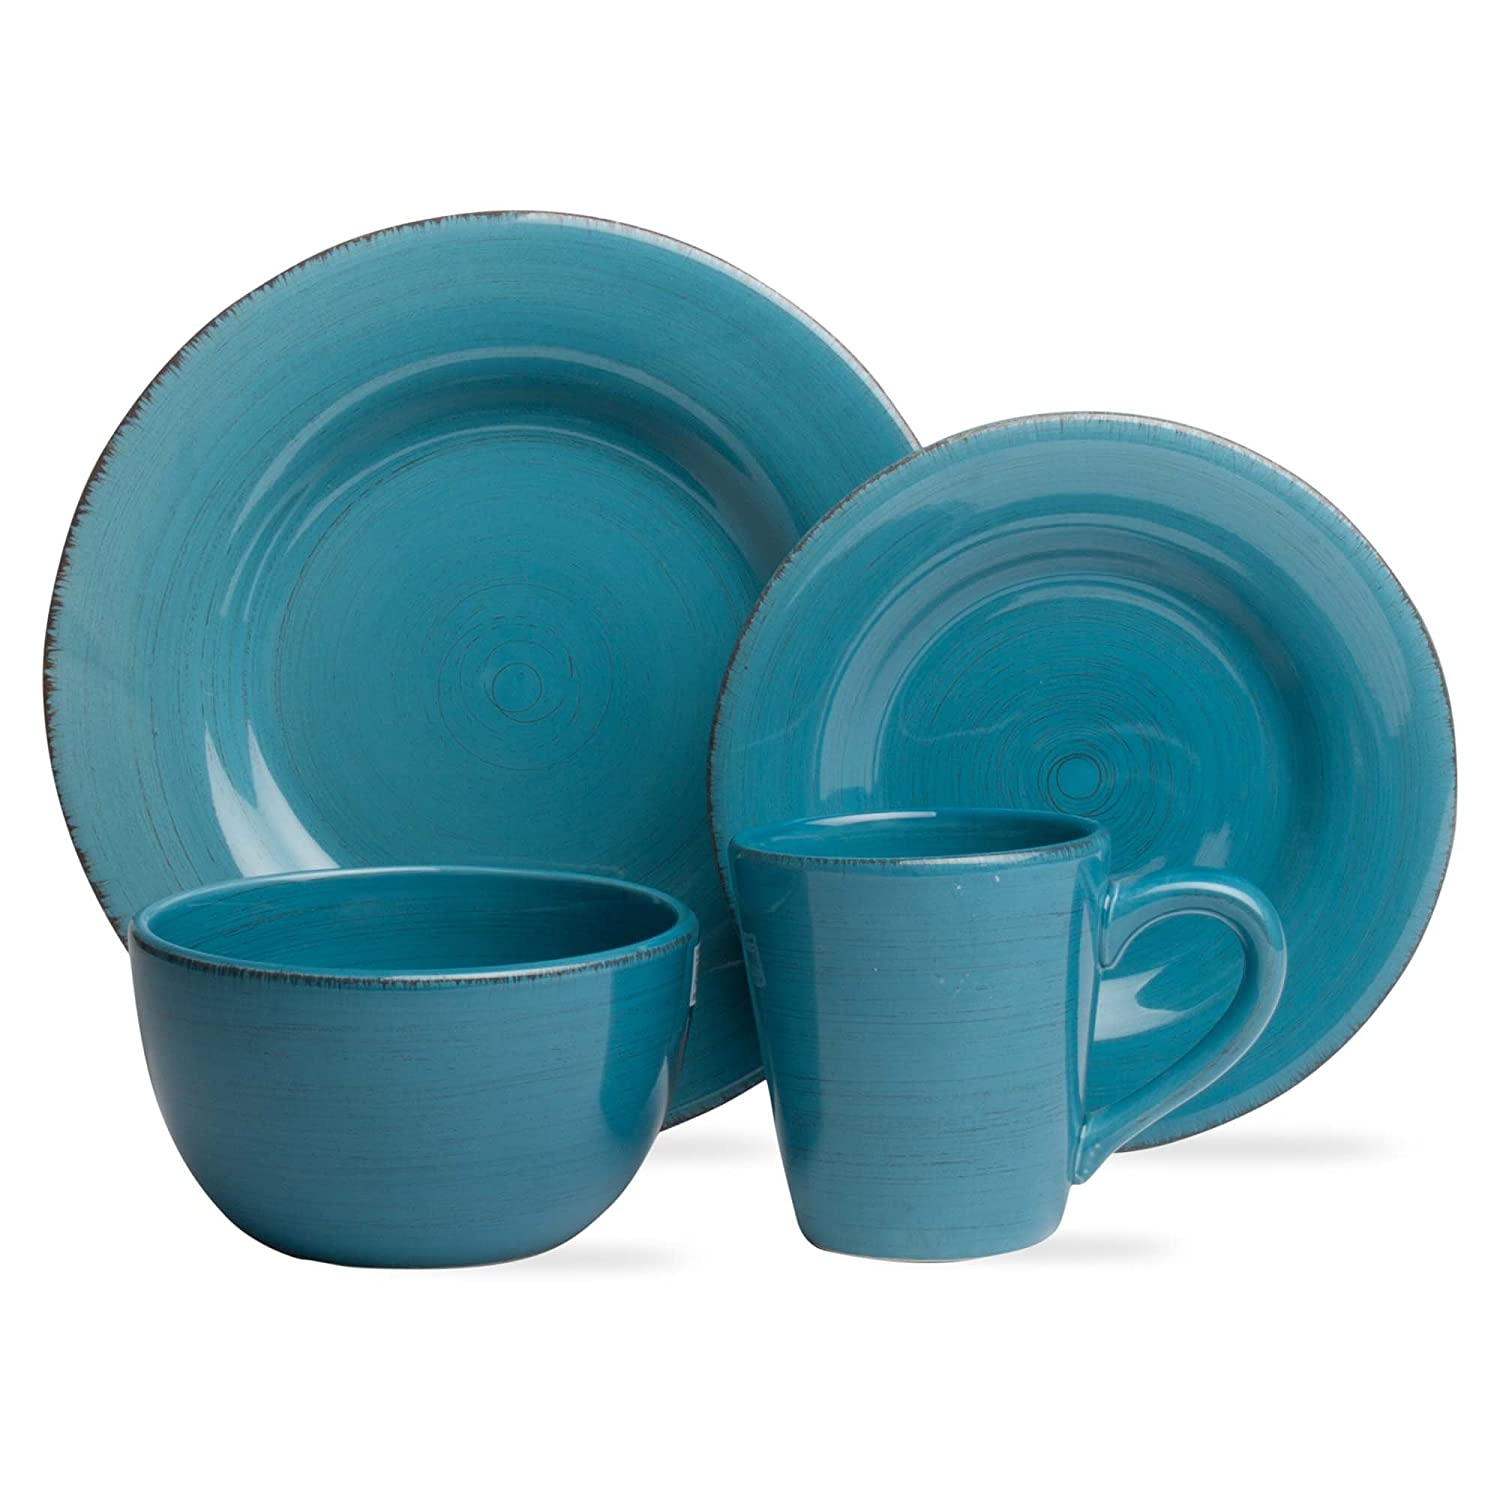 Amazon.com | tag - Sonoma 16-Piece Ironstone Ceramic Dinner Set A Stylish Way to Bring Bold Color to Your Table Turquoise Dinnerware Sets  sc 1 st  Amazon.com & Amazon.com | tag - Sonoma 16-Piece Ironstone Ceramic Dinner Set A ...